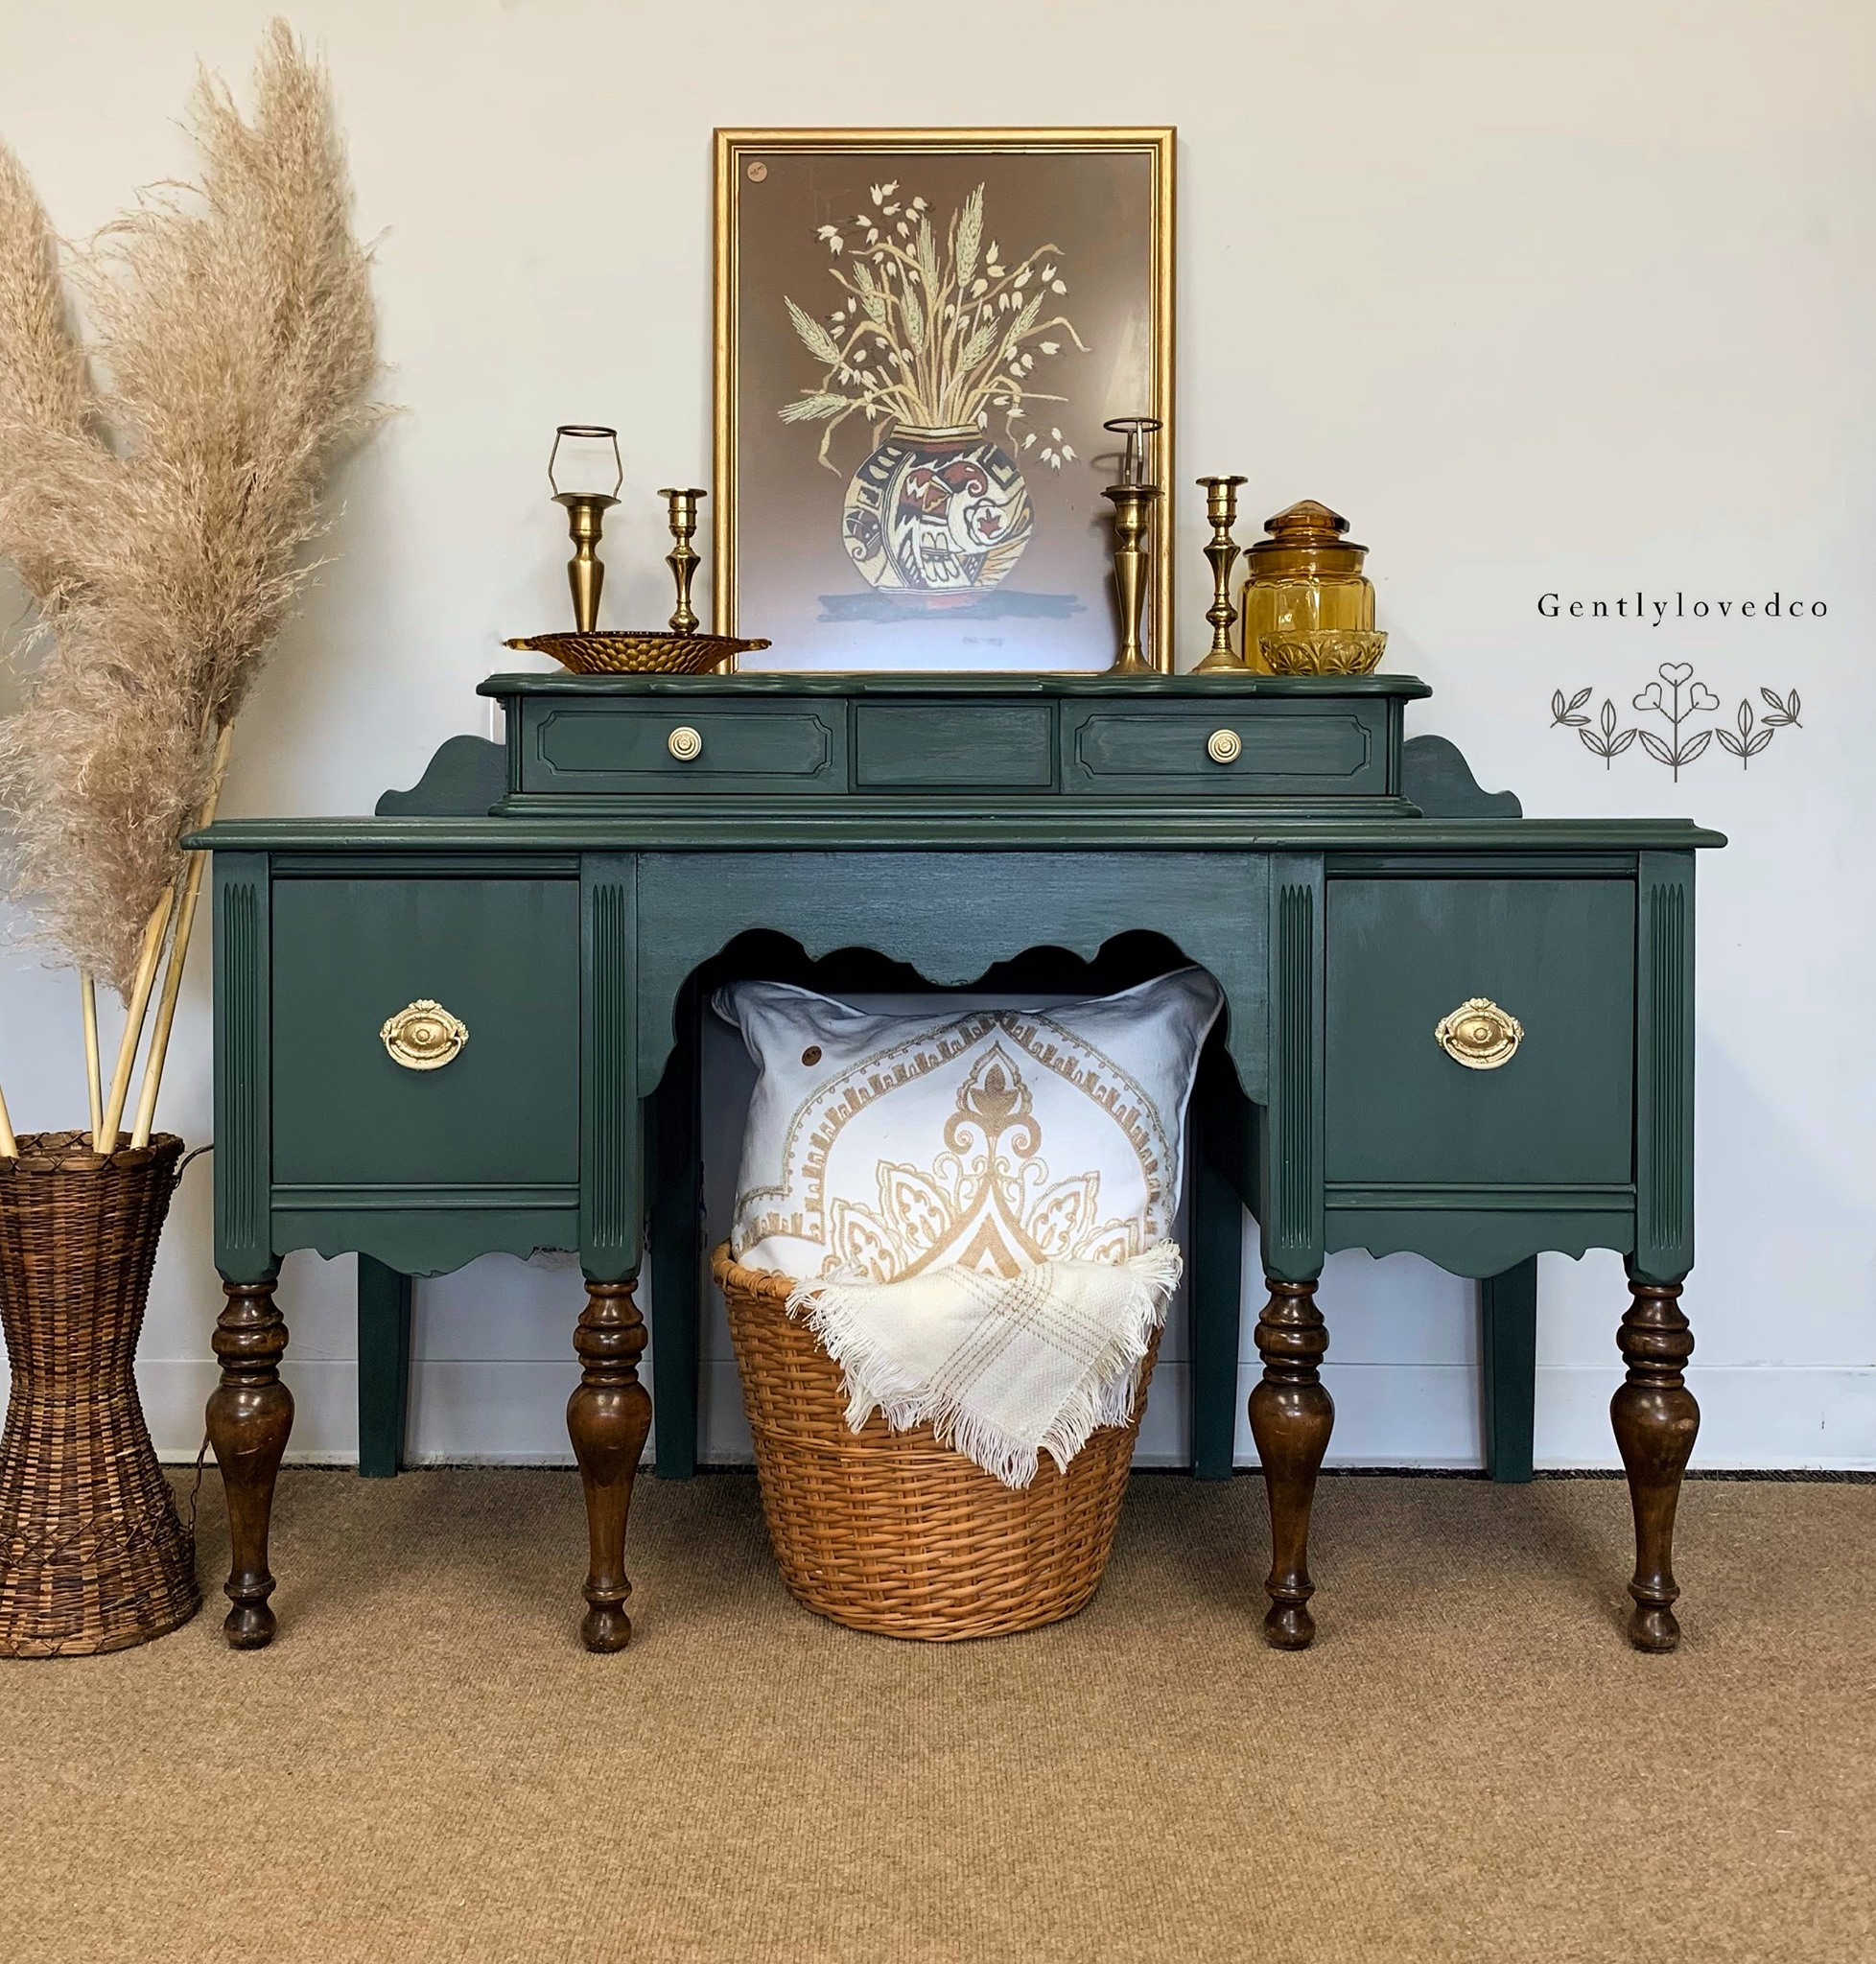 Vanity/Desk in Hollow Hill with Gold Hardware